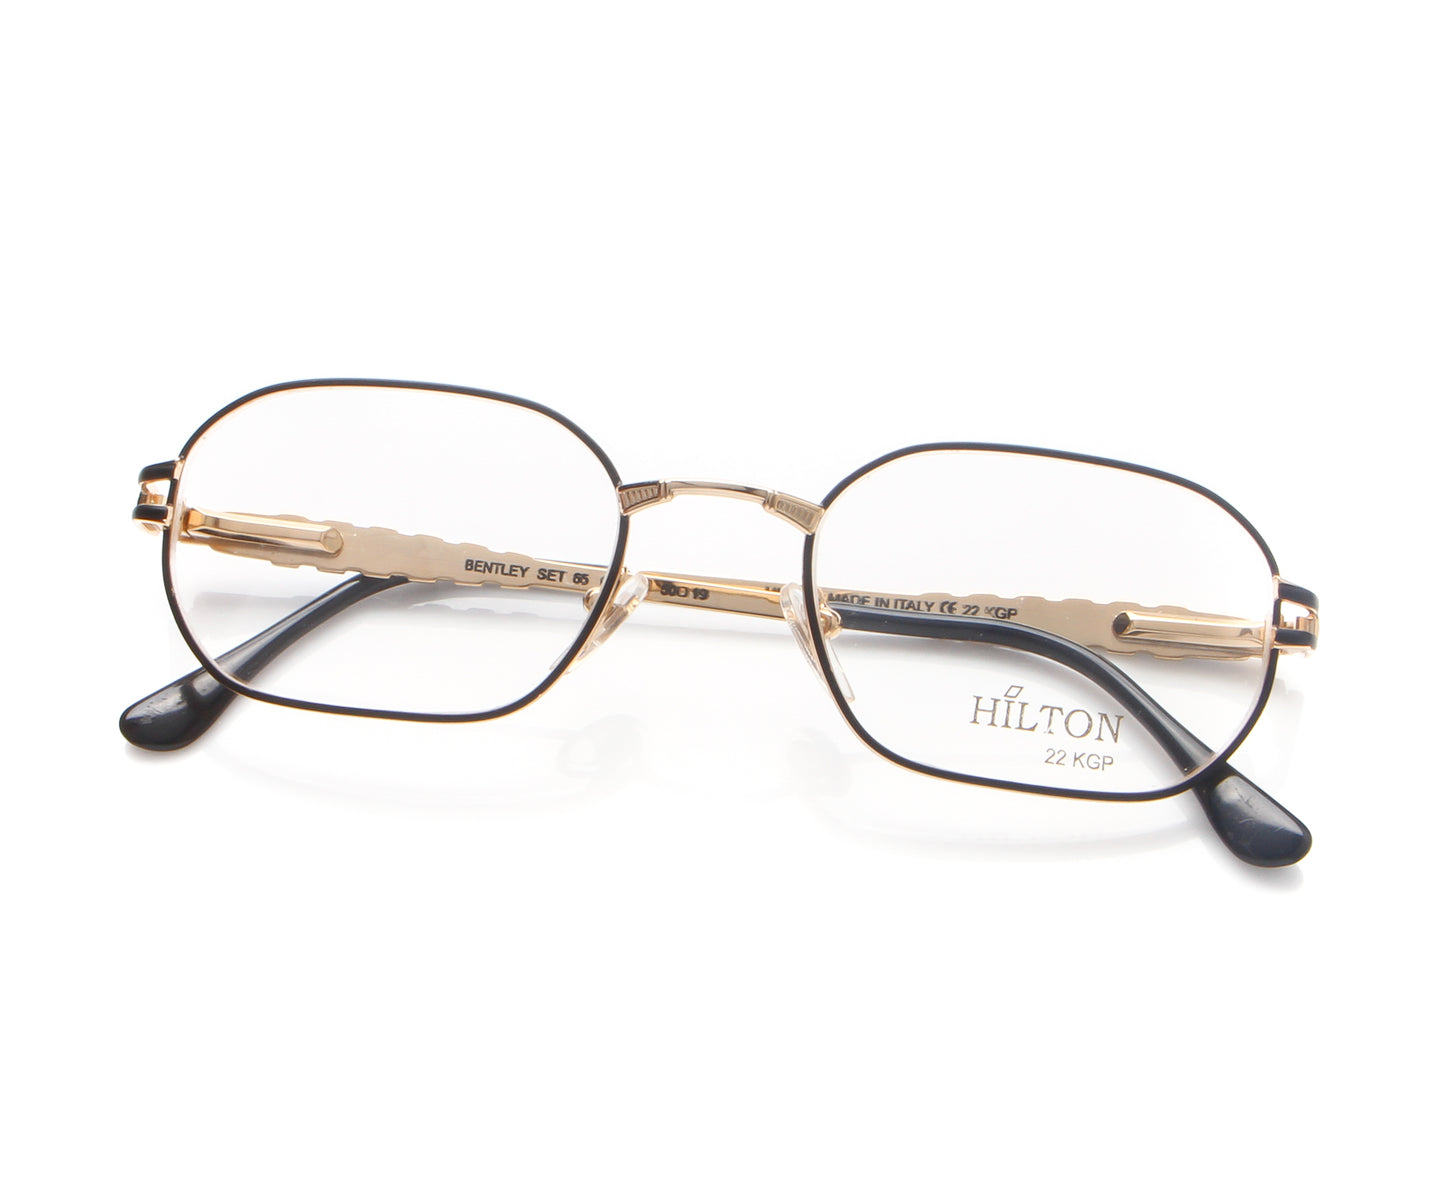 Vintage Hilton Bentley 65 01 22 KGP Thumb, Hilton , glasses frames, eyeglasses online, eyeglass frames, mens glasses, womens glasses, buy glasses online, designer eyeglasses, vintage sunglasses, retro sunglasses, vintage glasses, sunglass, eyeglass, glasses, lens, vintage frames company, vf